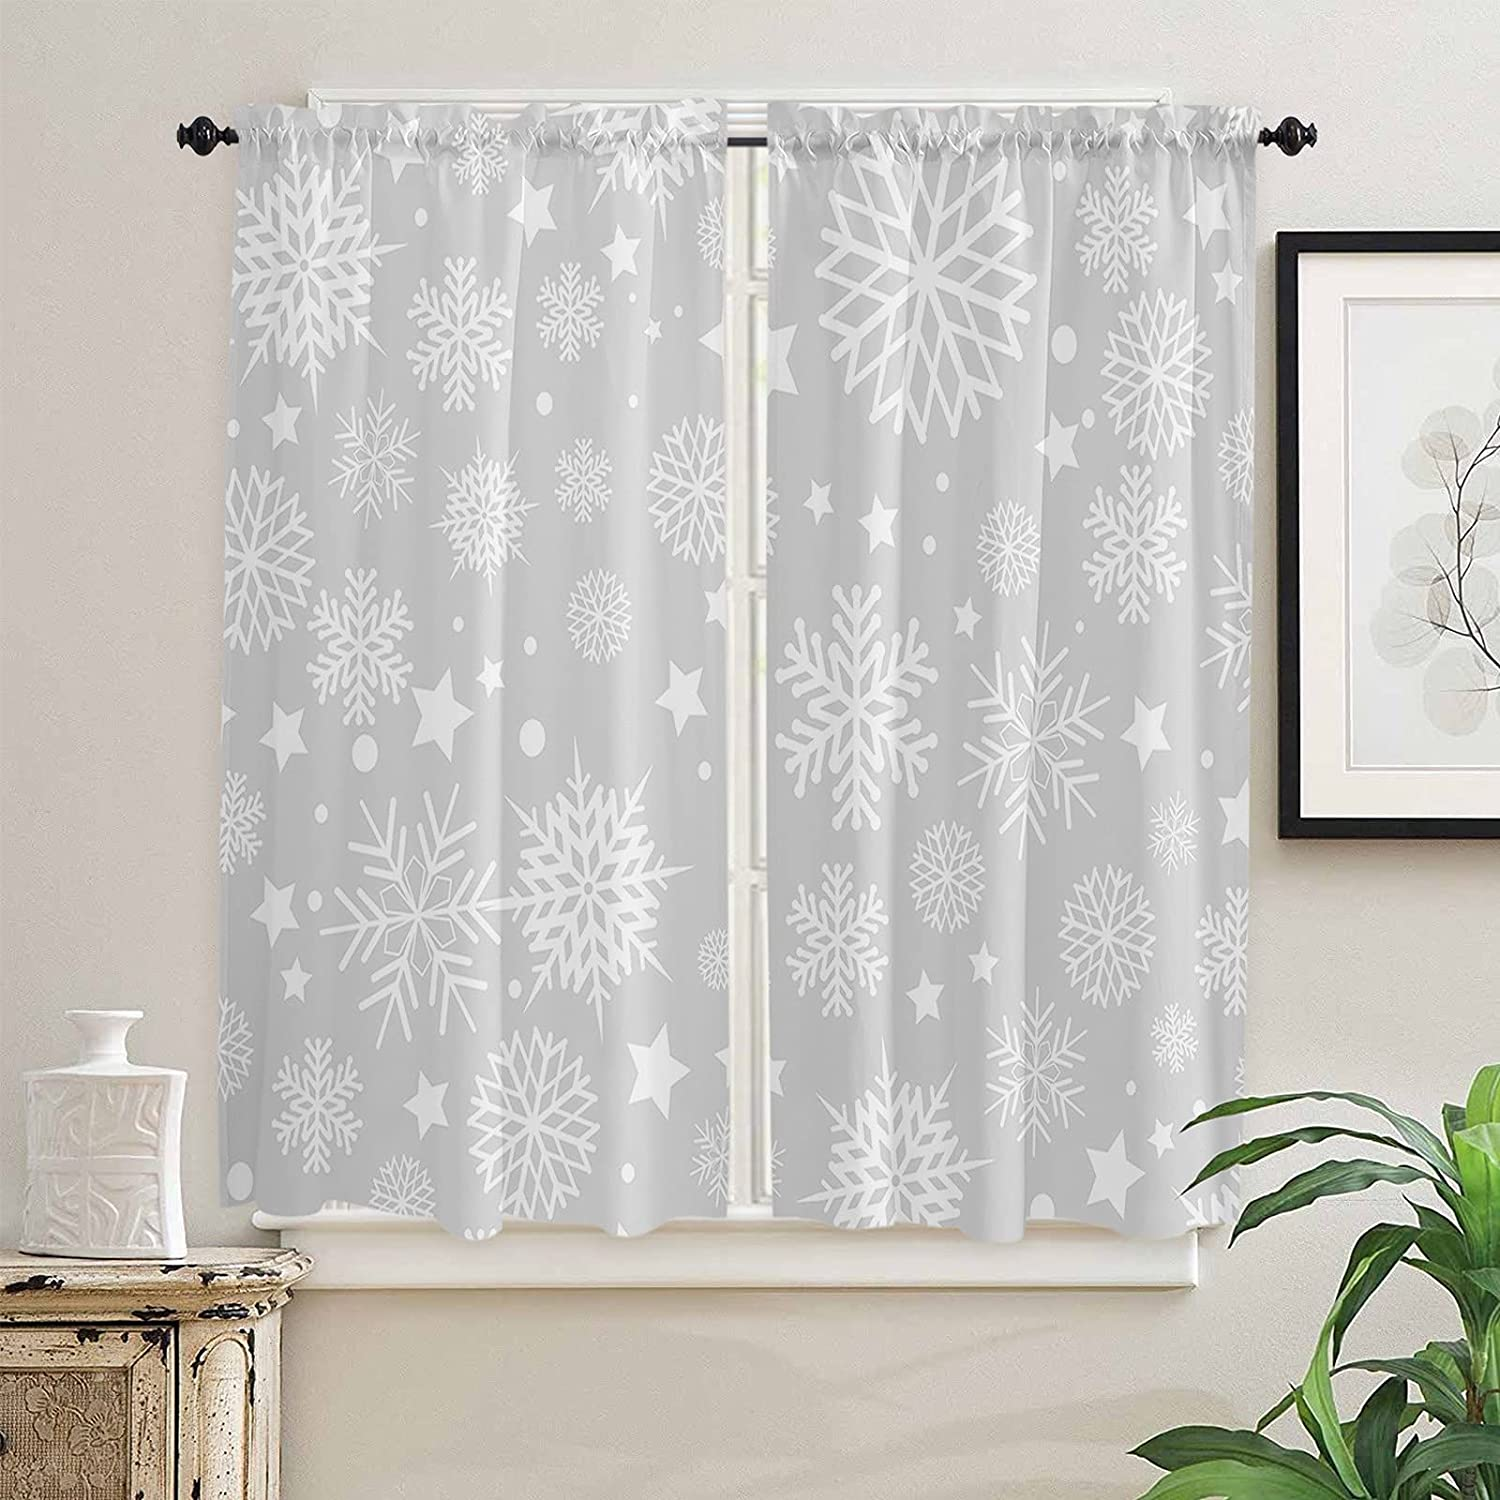 Christmas Kitchen Curtains 63 Inch El Paso Mall for Windows half Length Winter Wh